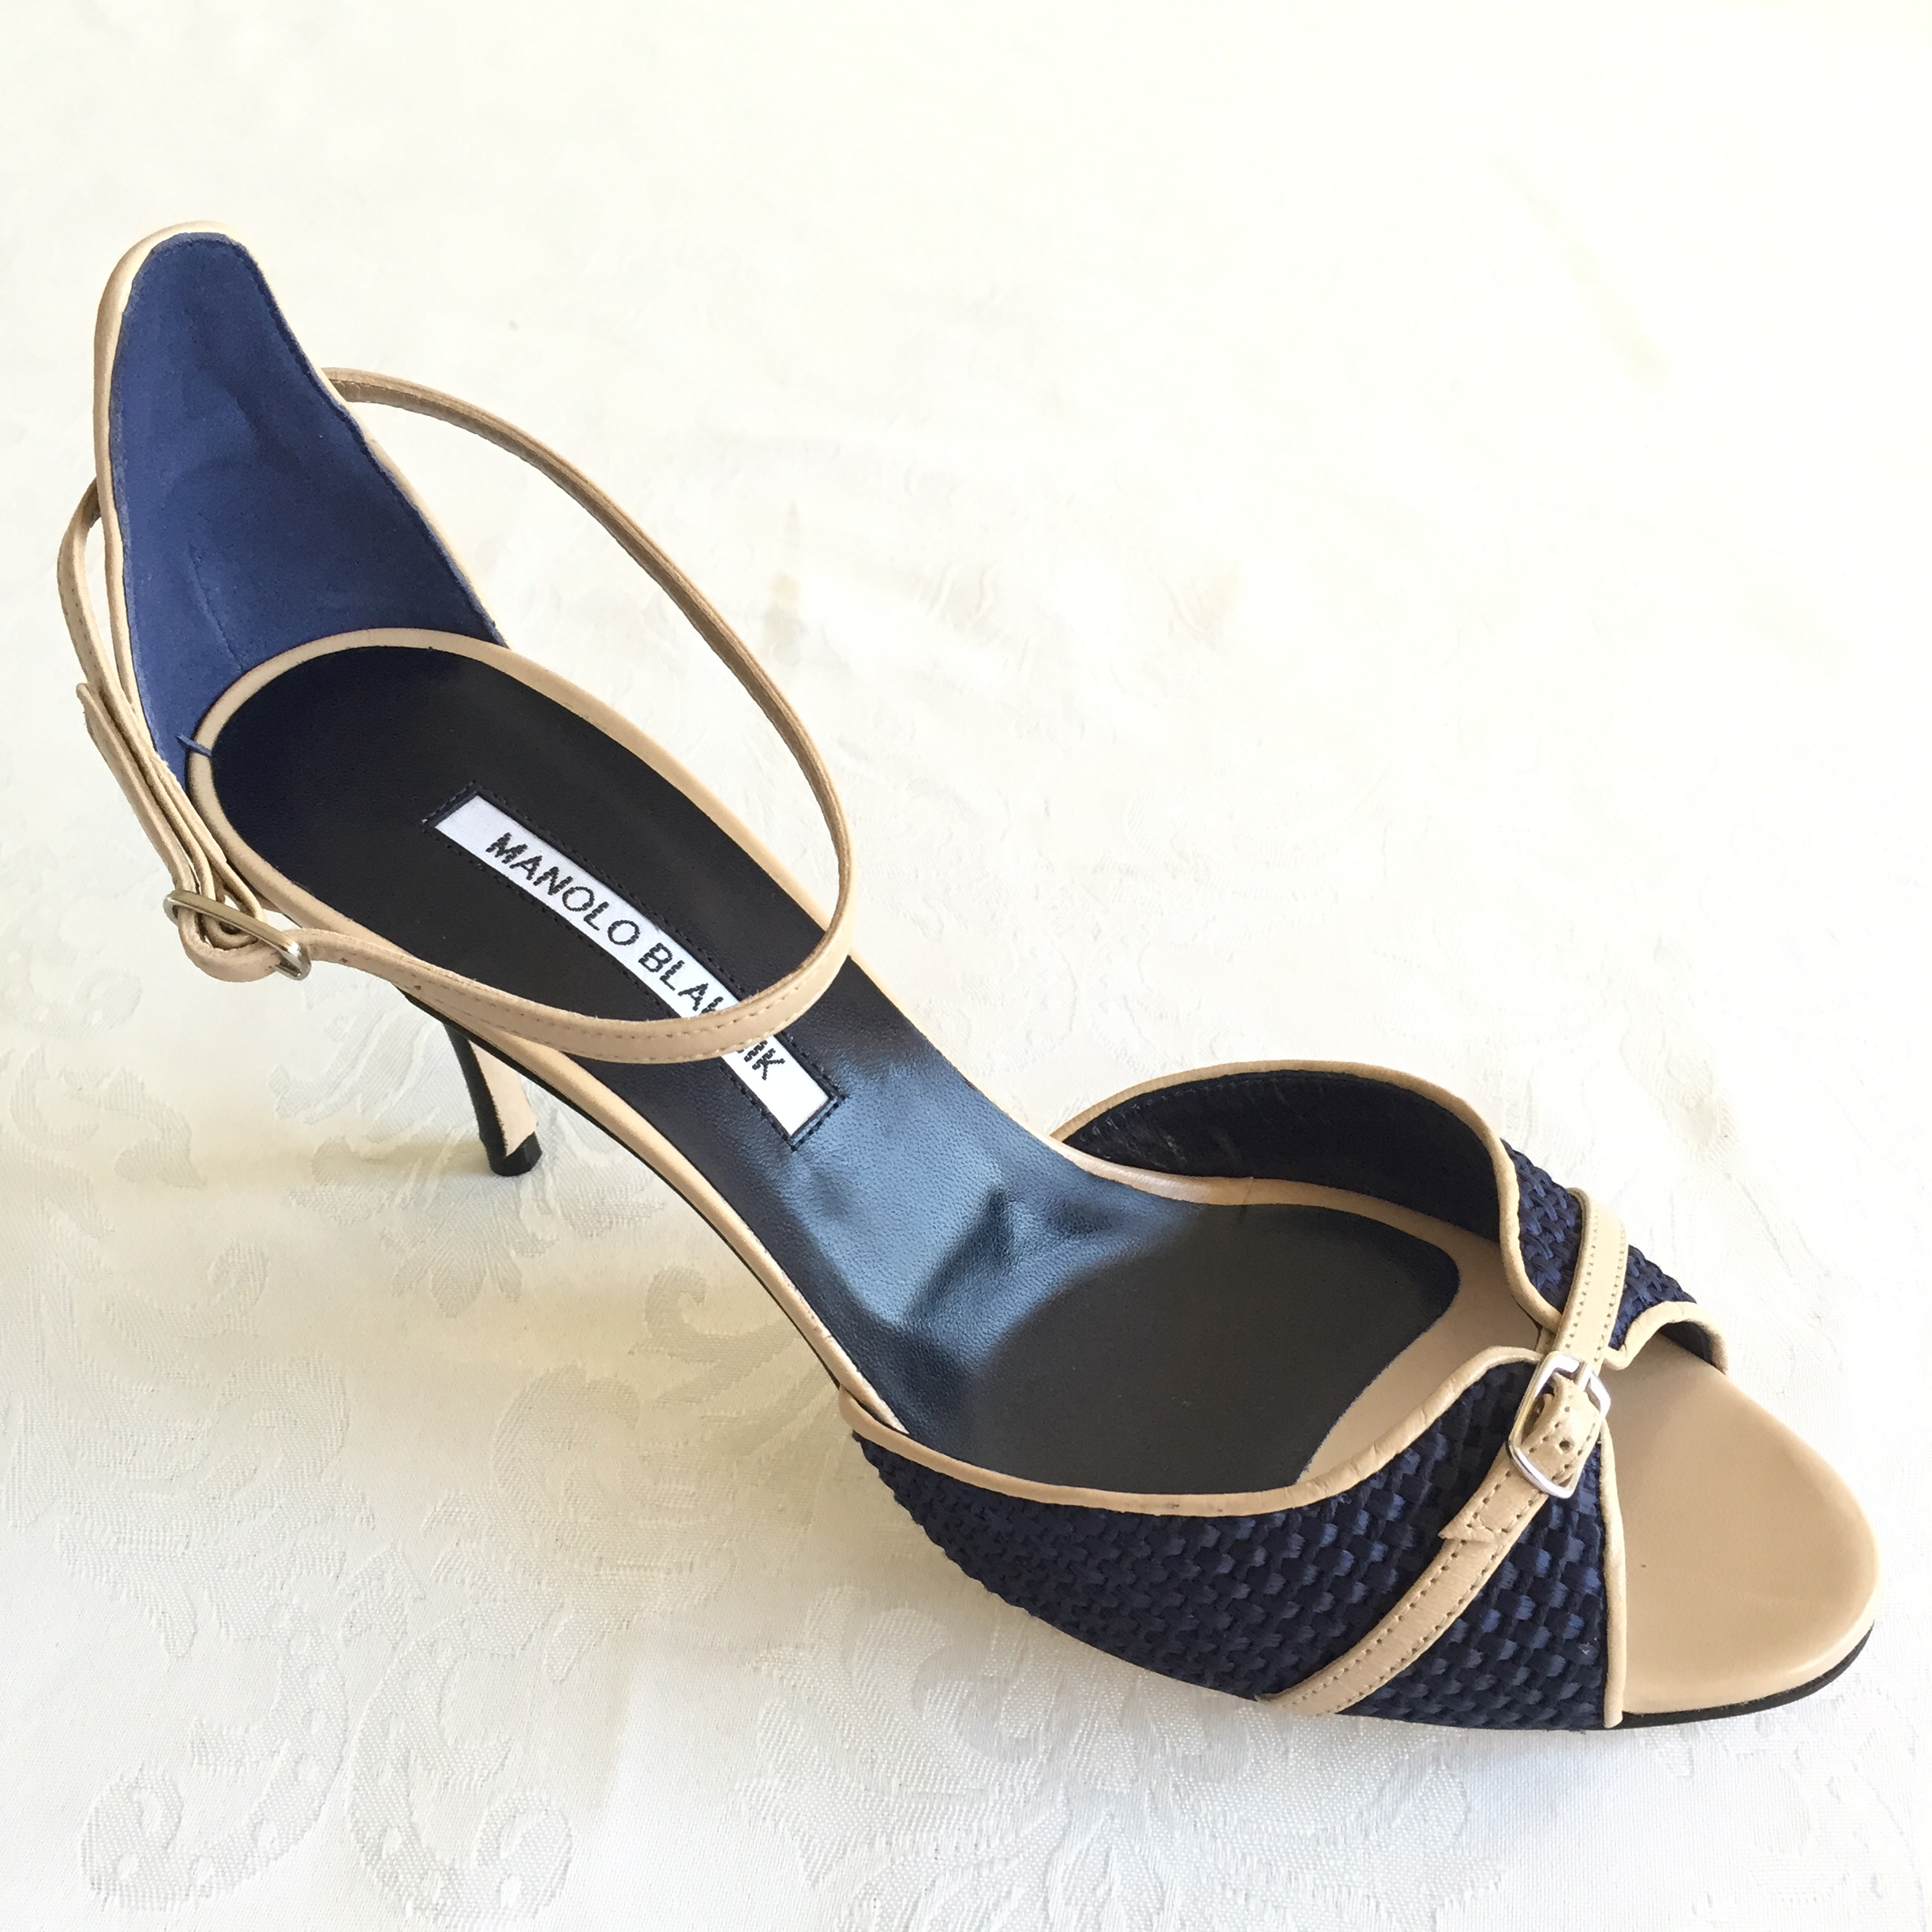 Manolo blahnik navy tan open toe ankle strap heels for Scarpe manolo blahnik shop on line